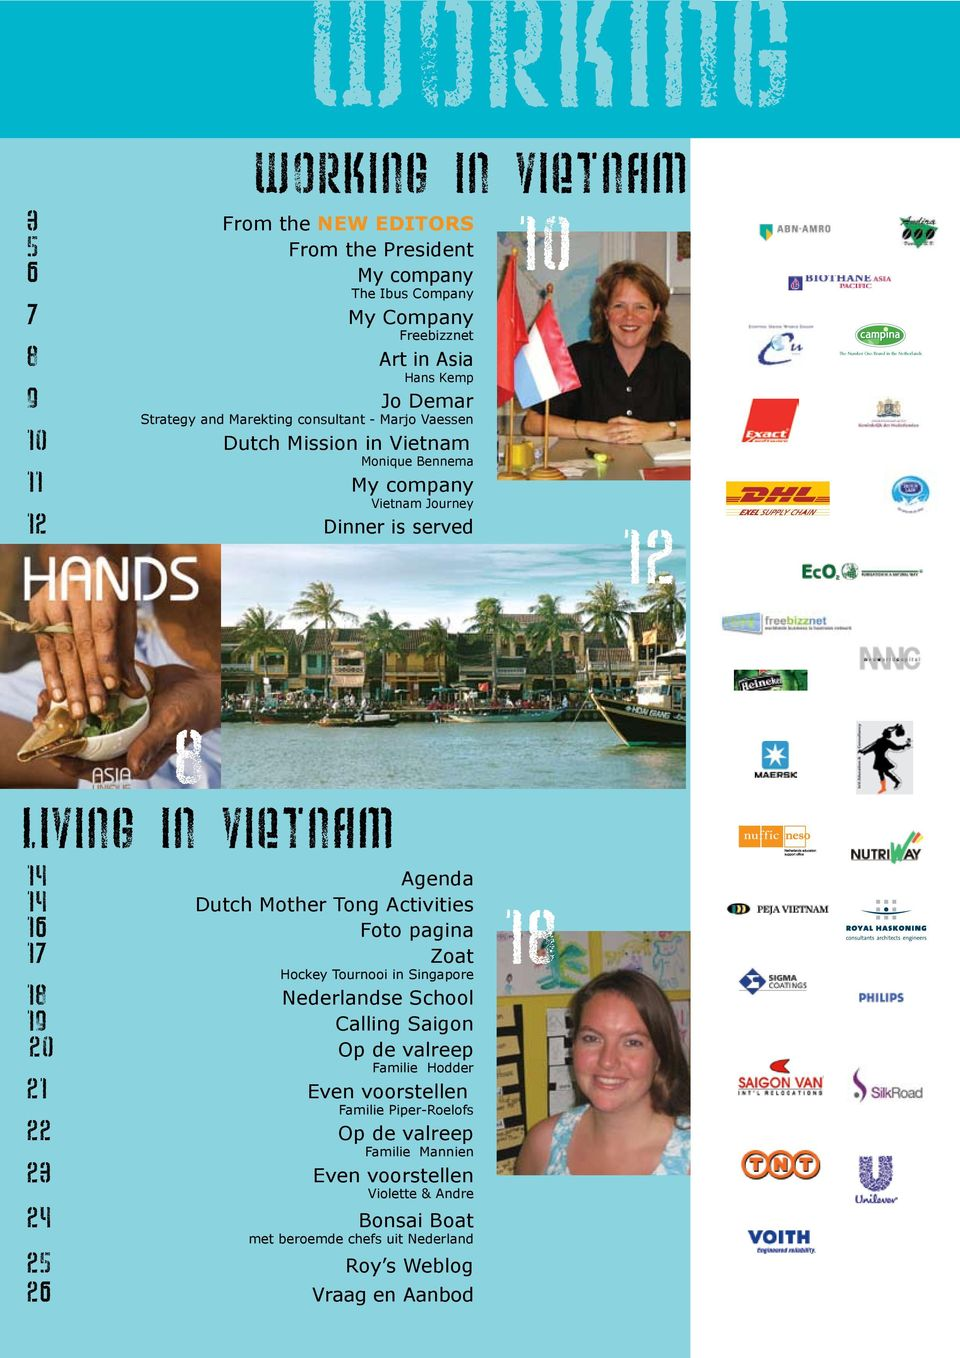 Vietnam 14 Agenda 14 Dutch Mother Tong Activities 16 Foto pagina 17 Zoat Hockey Tournooi in Singapore 18 Nederlandse School 19 Calling Saigon 20 Op de valreep Familie Hodder 21 Even